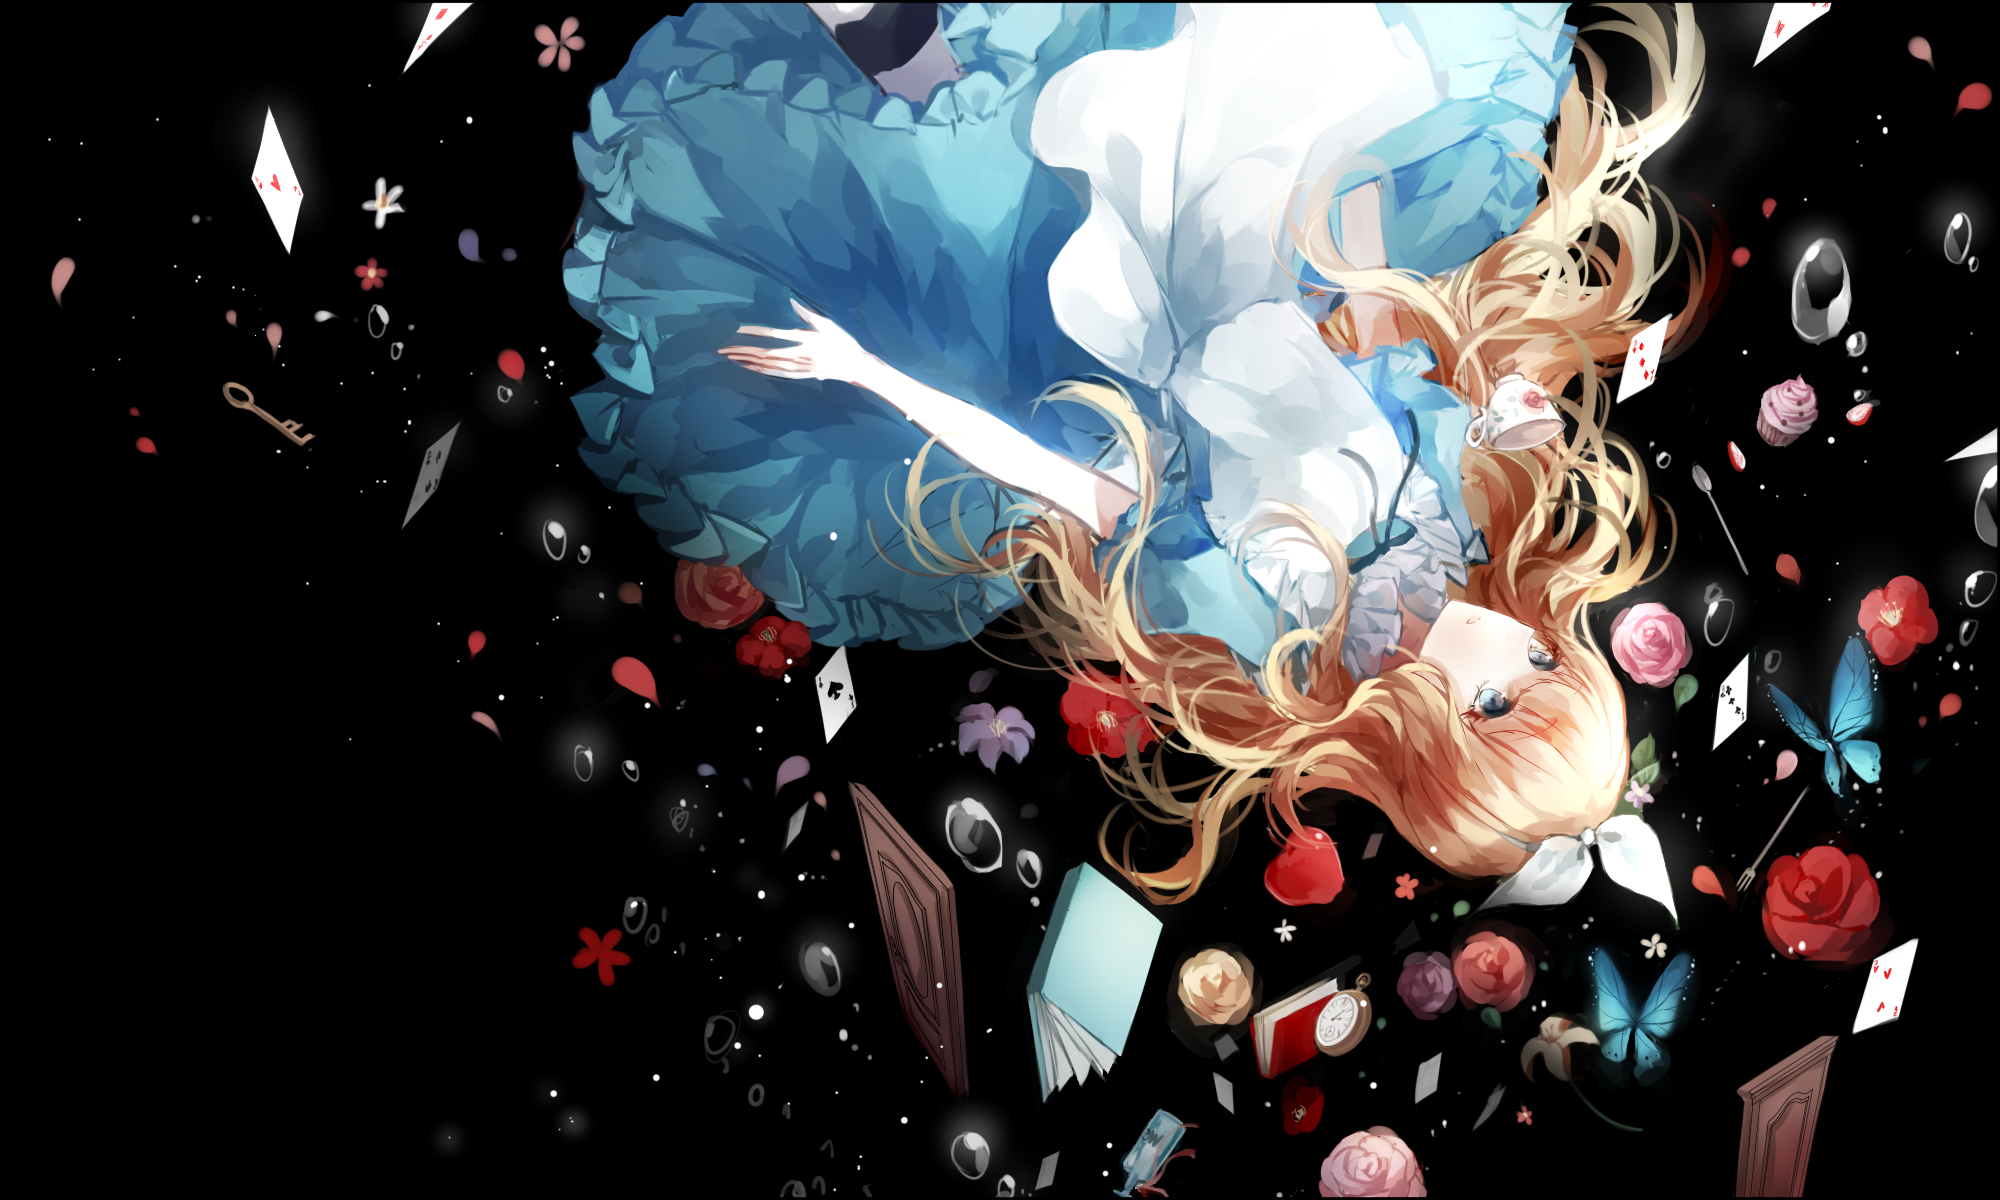 Alice In Wonderland Wallpaper Zerochan Anime Image Board